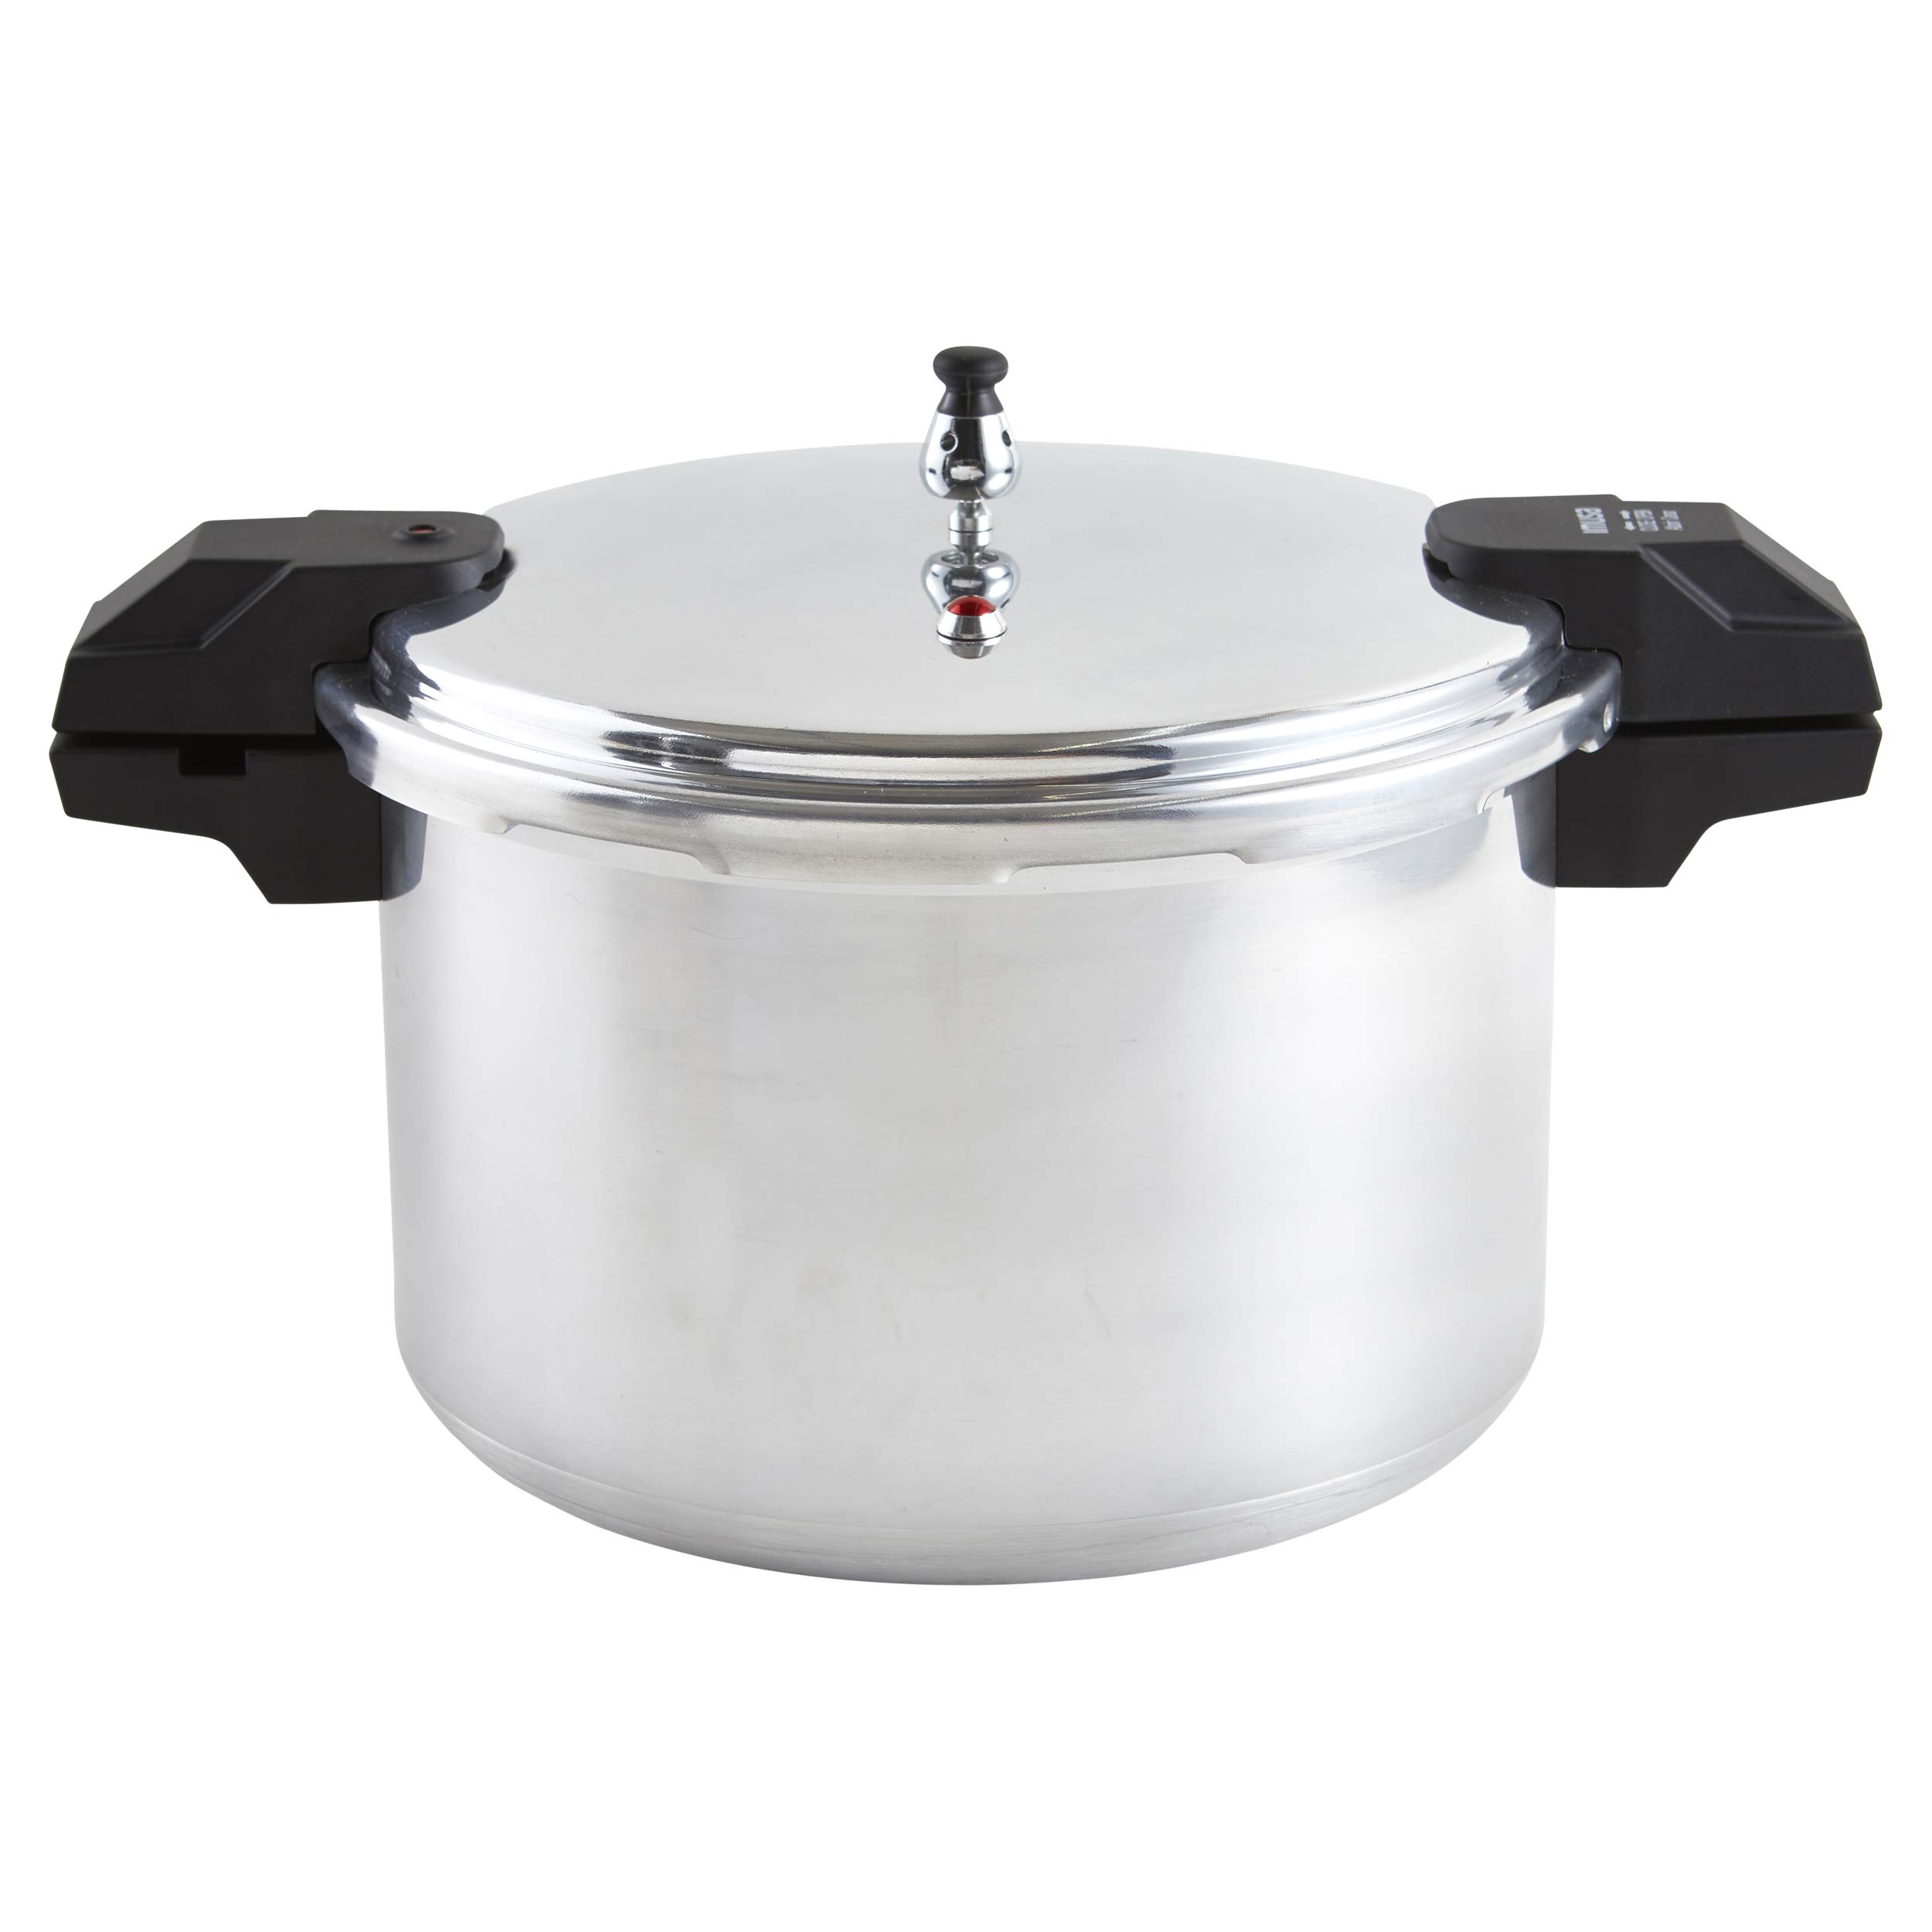 IMUSA USA A417-80808 22Qt Jumbo Stovetop Pressure Cooker, Silver